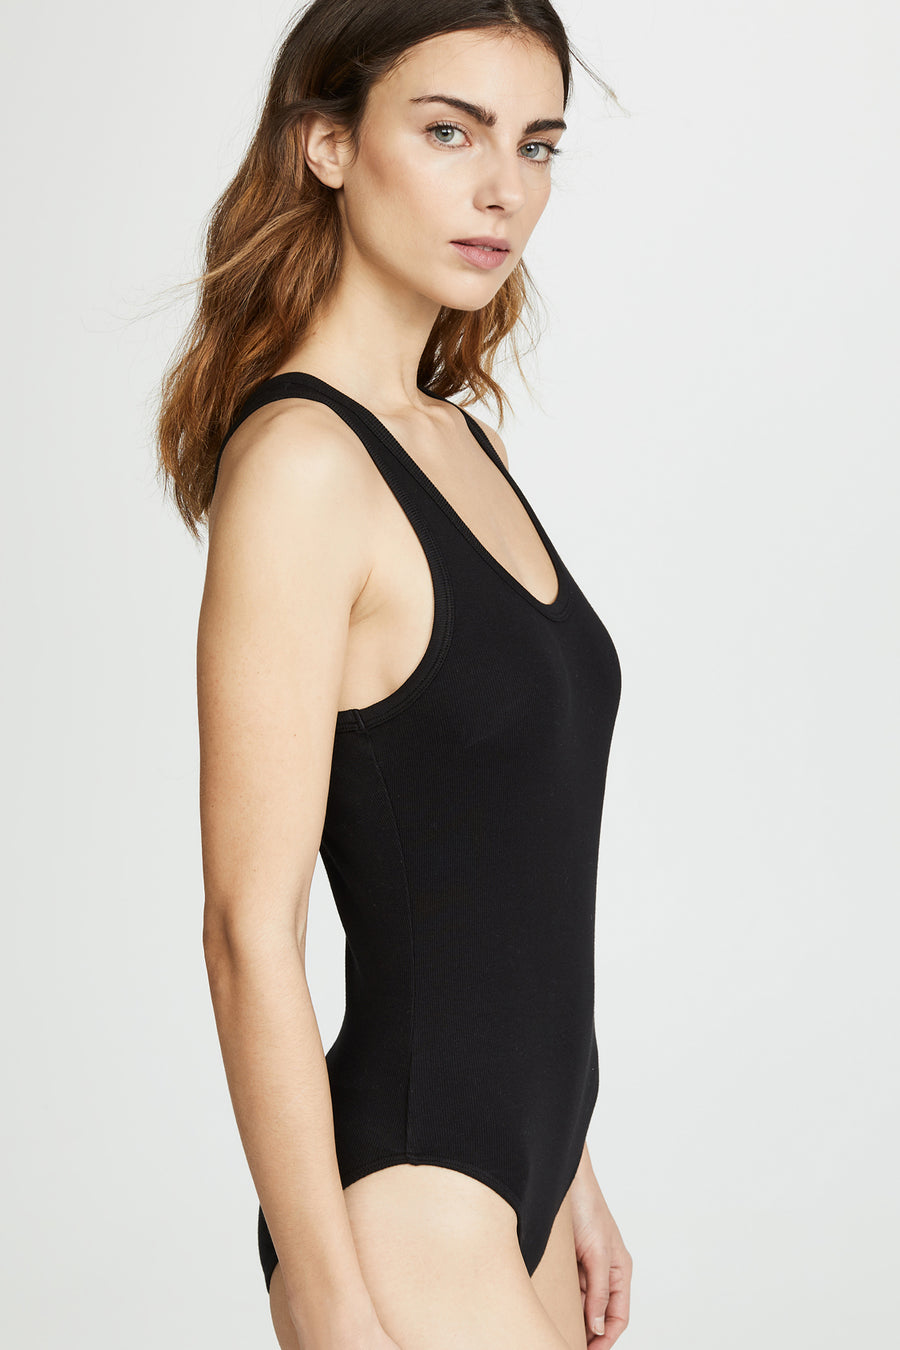 Rib Tank Body Suit - Black - Pavilion